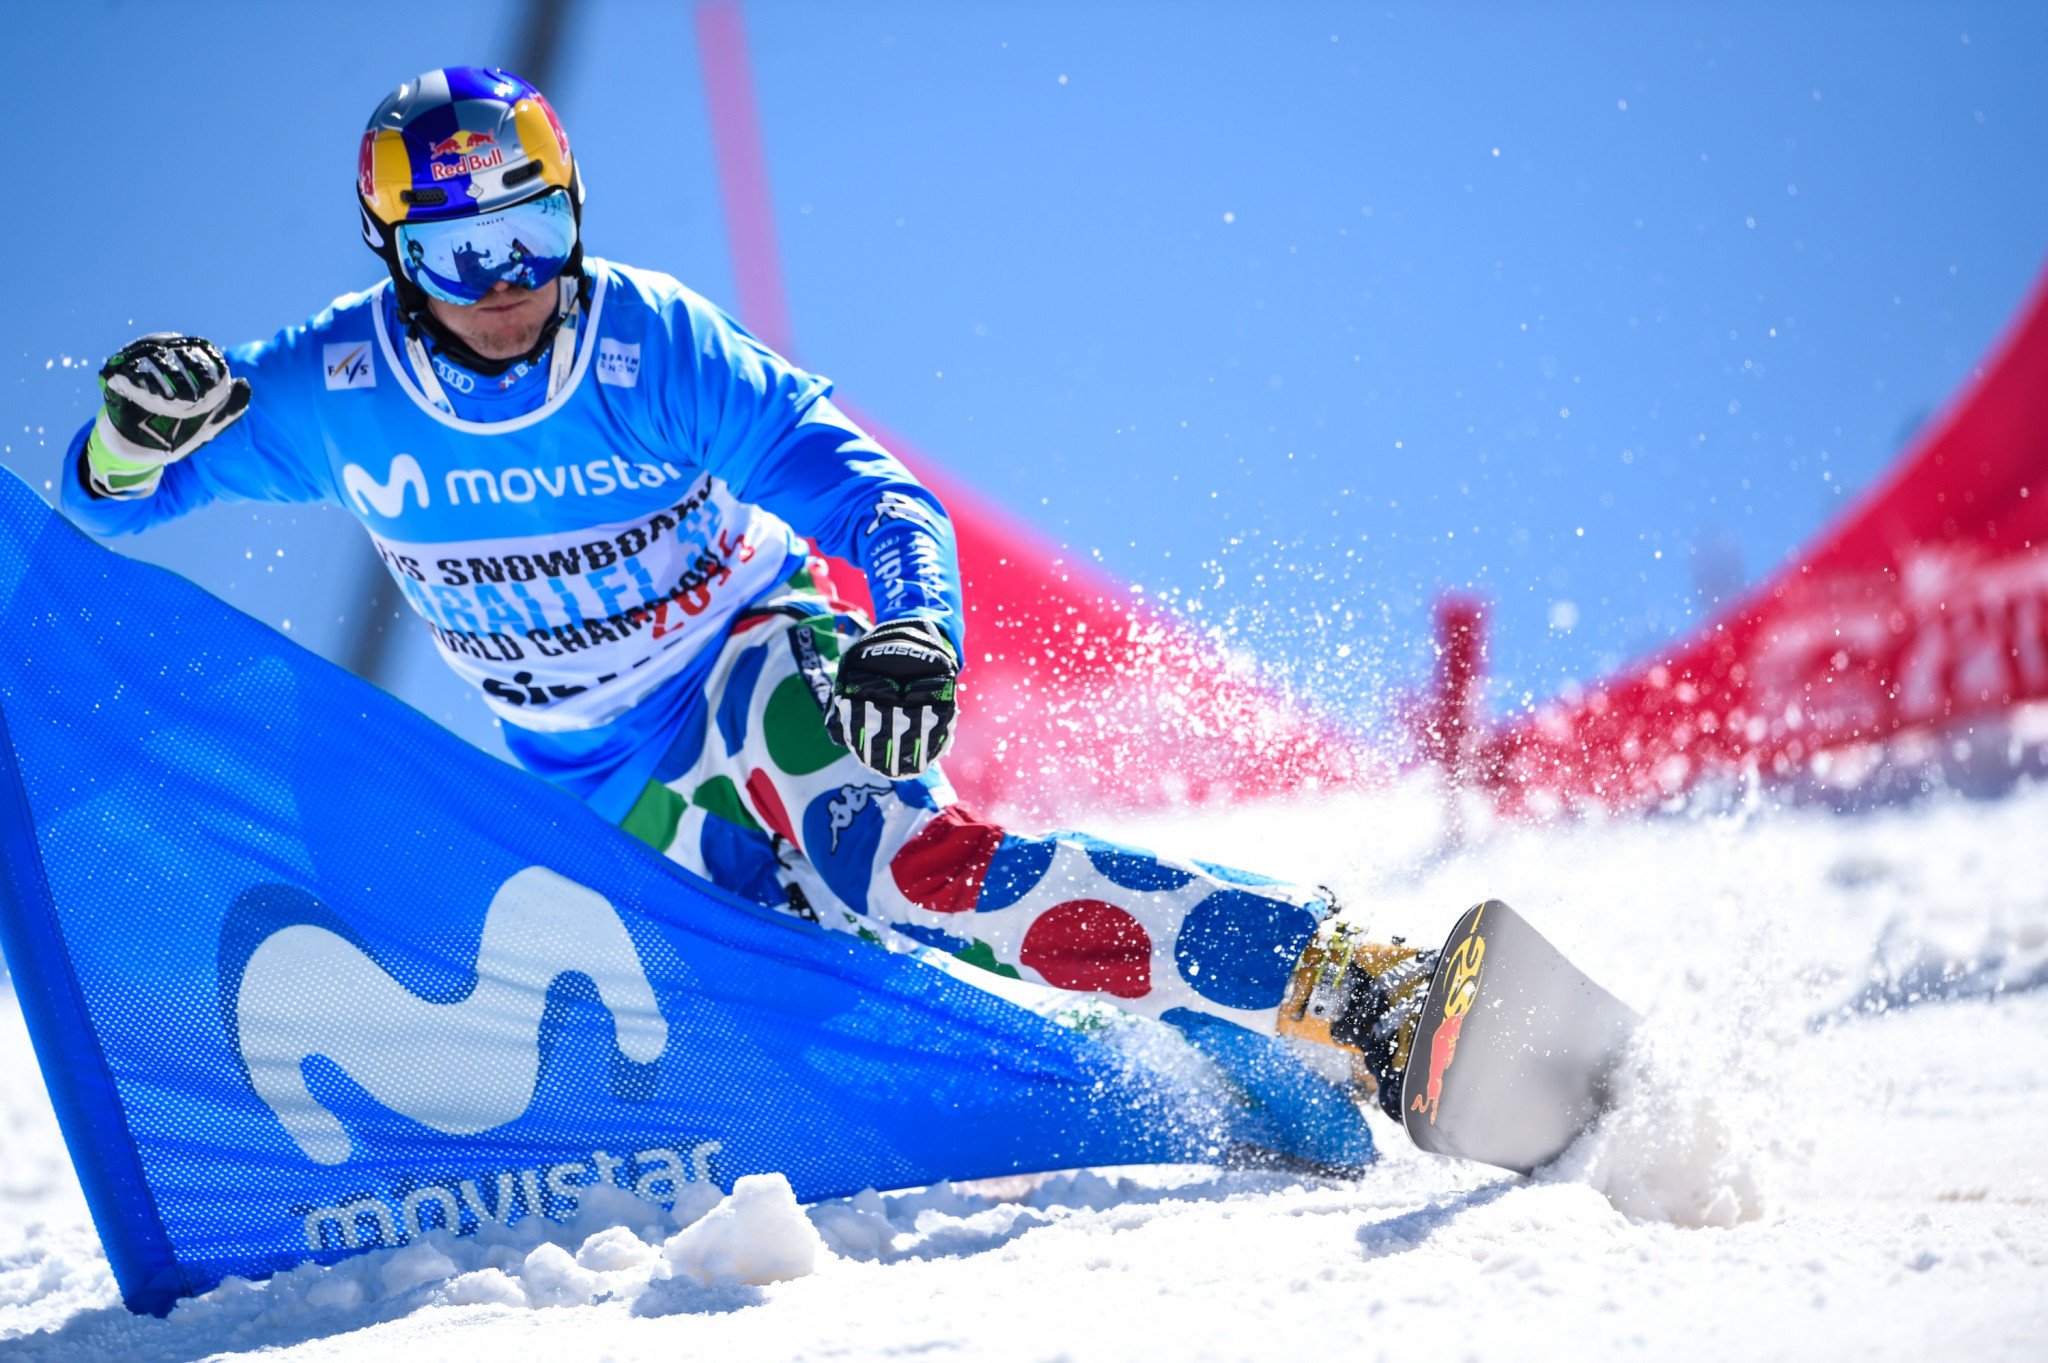 Fischnaller clinches Alpine Snowboard World Cup title on home snow